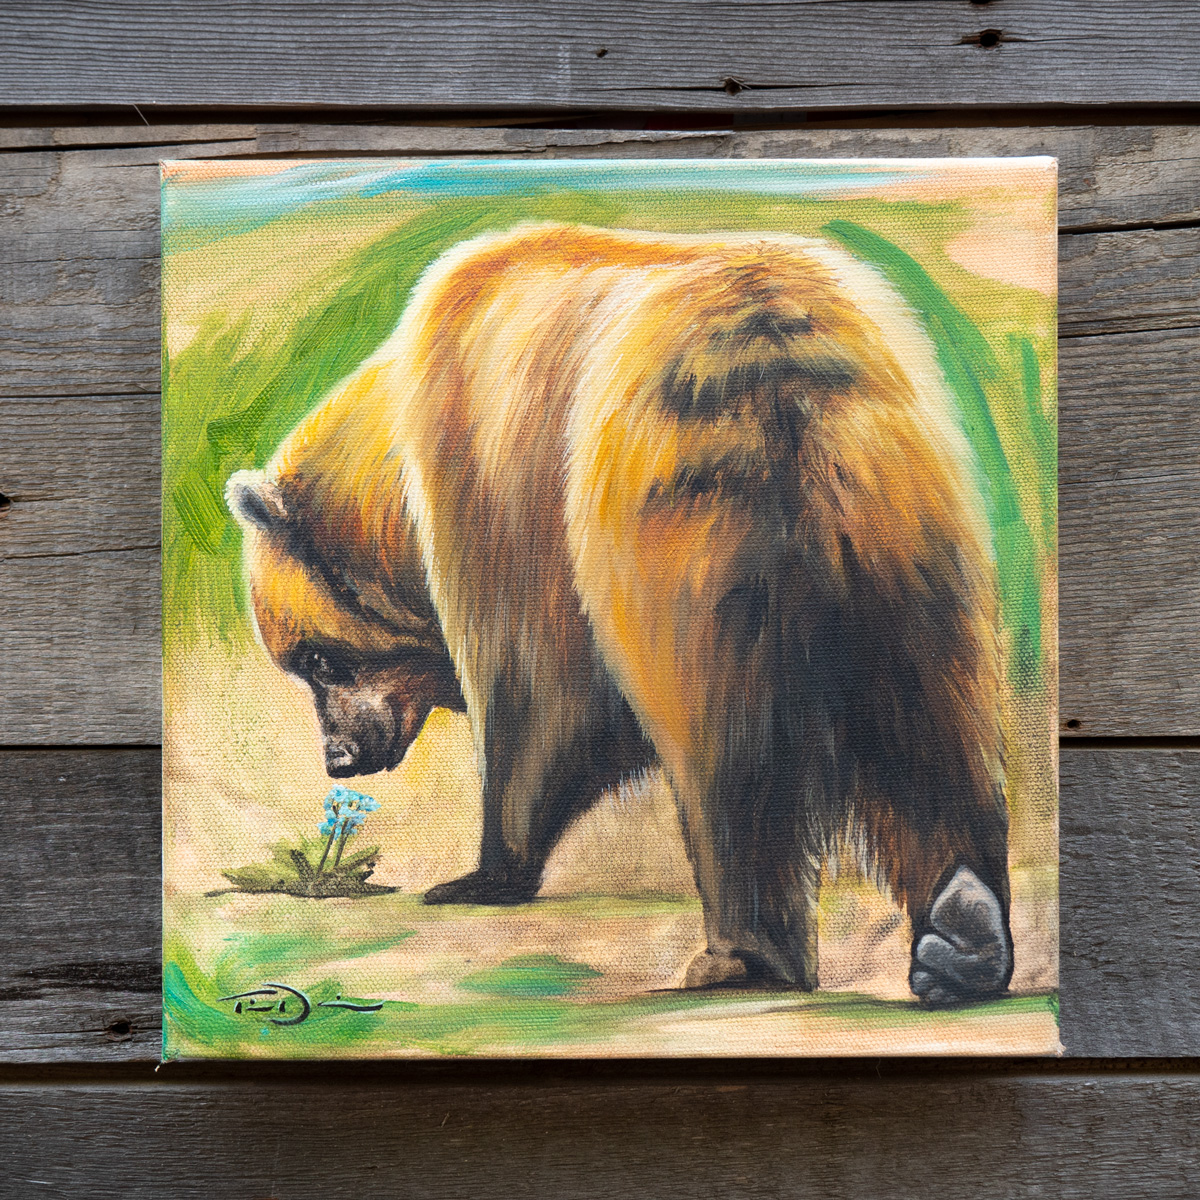 Forget Me Not Bear - original oil painting by Timothy Davison of the Davison Art Company featuring a grizzly bear smelling a forget me not flower, the state flower of Alaska